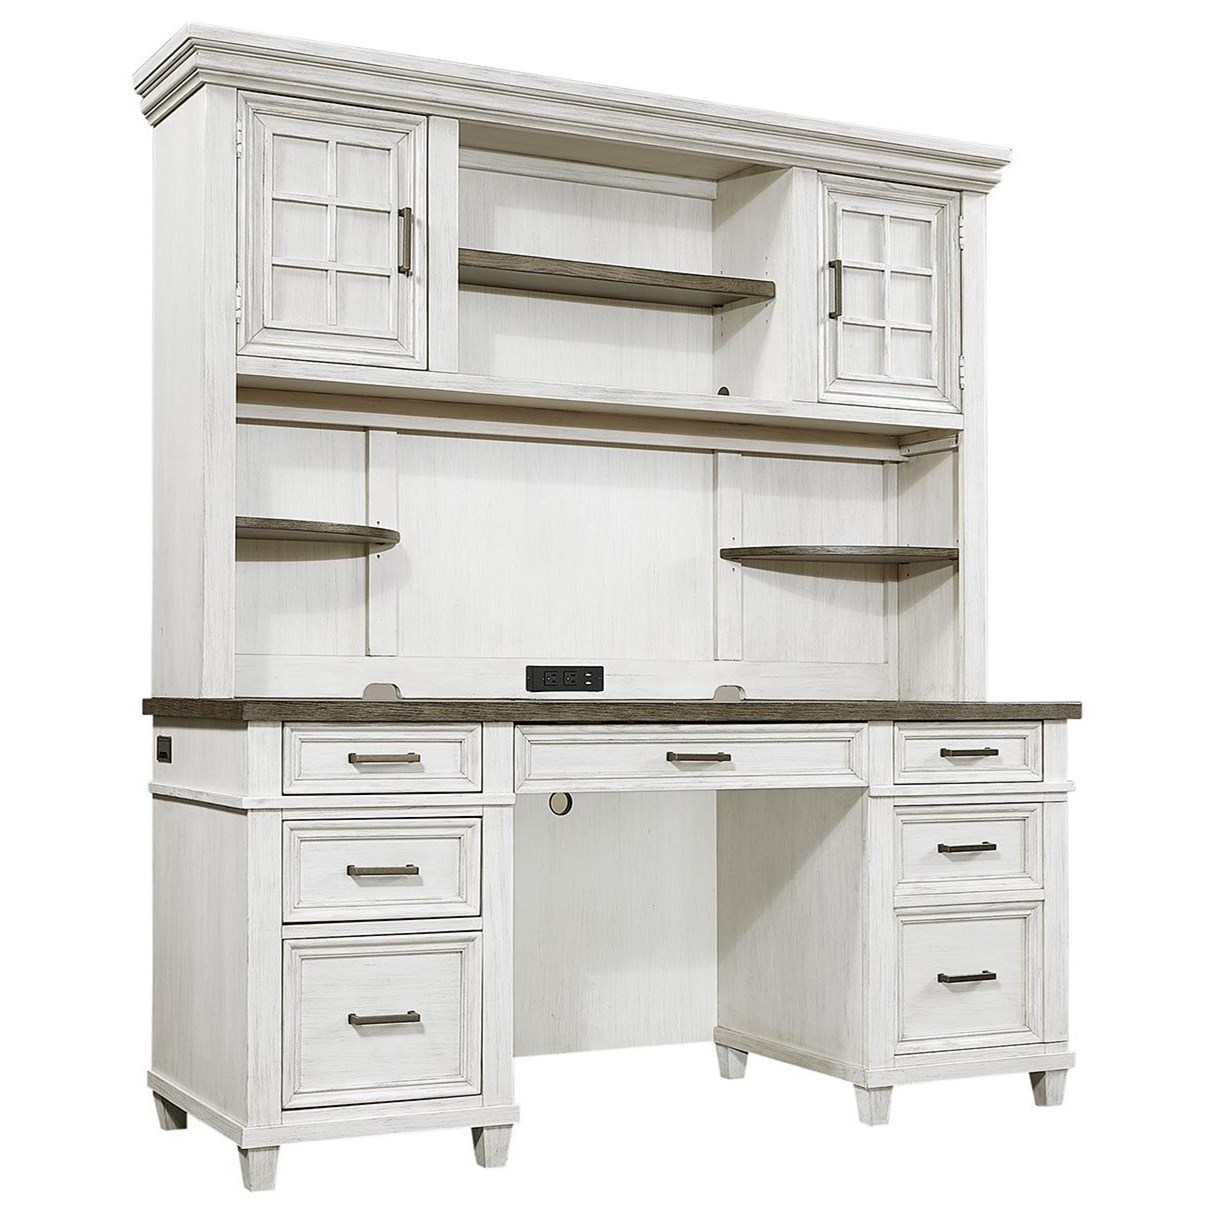 Caraway Credenza Desk and Hutch by Aspenhome at Walker's Furniture